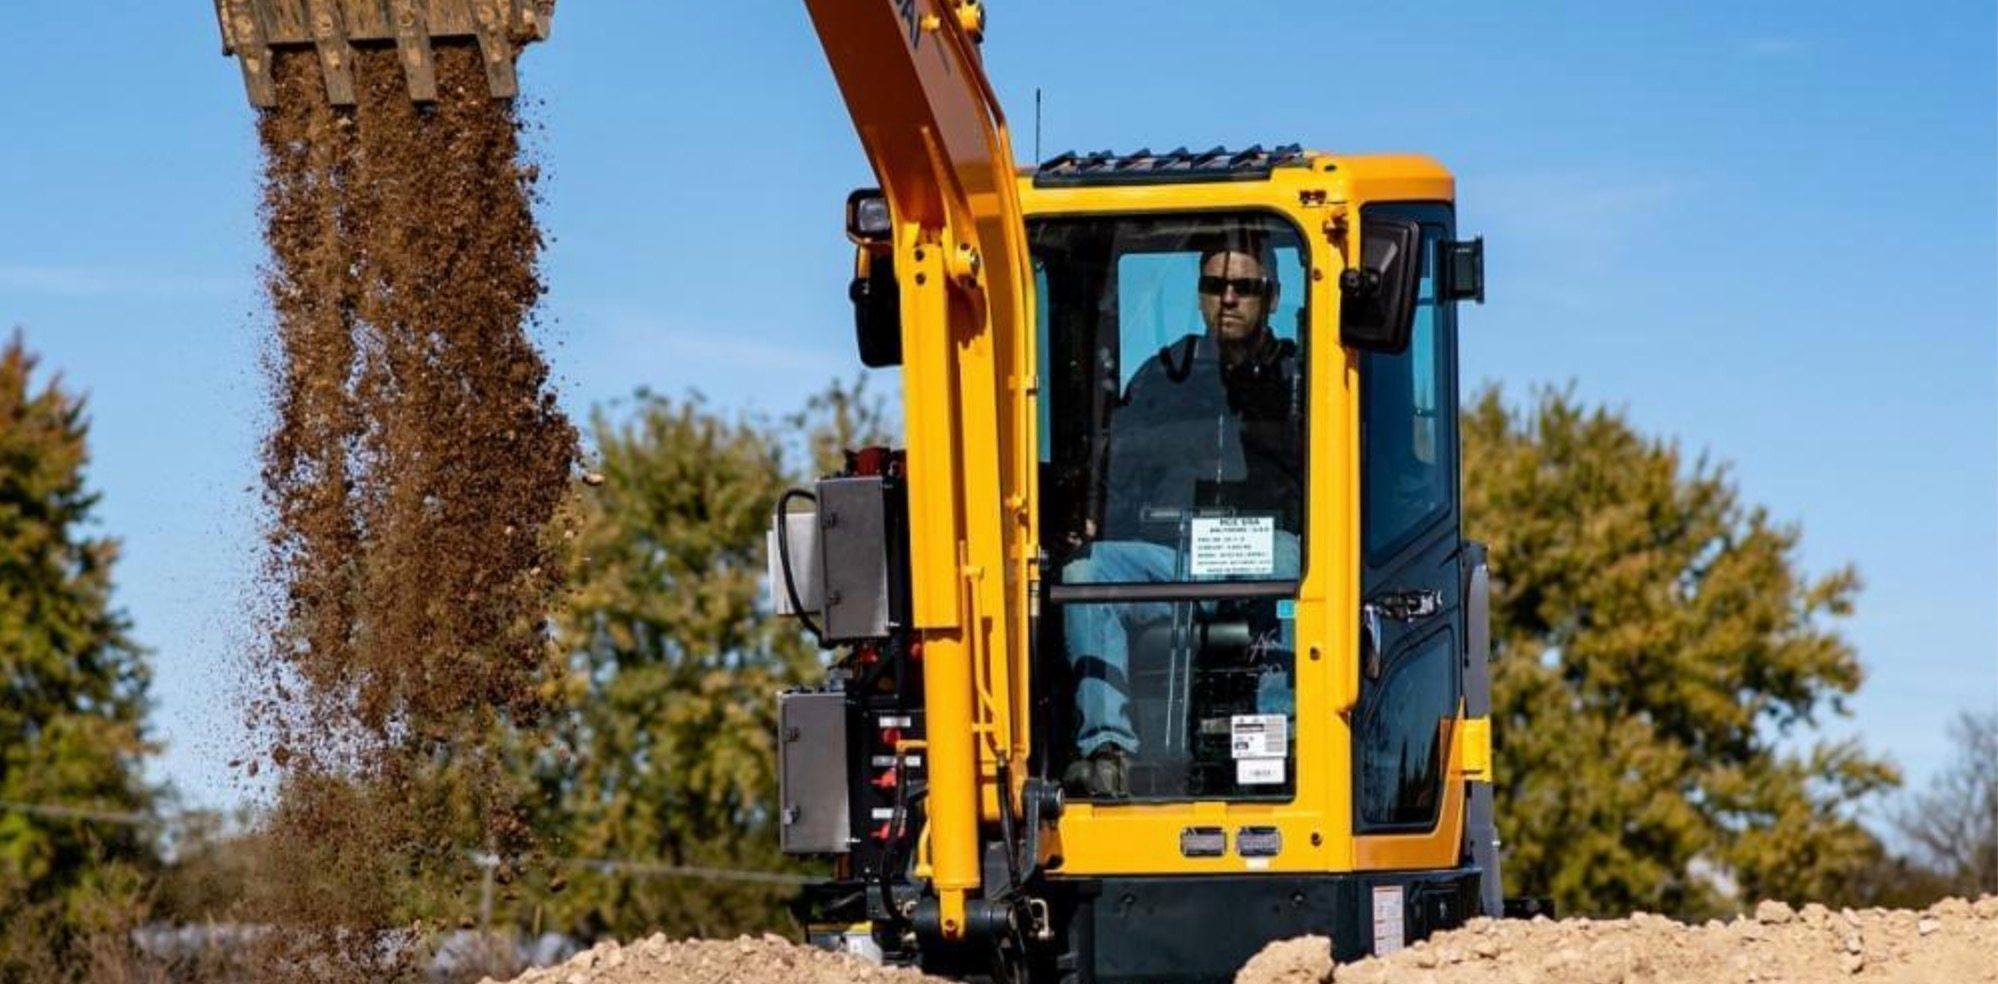 Cummins and Hyundai made an all-electric excavator as heavy machinery goes electric